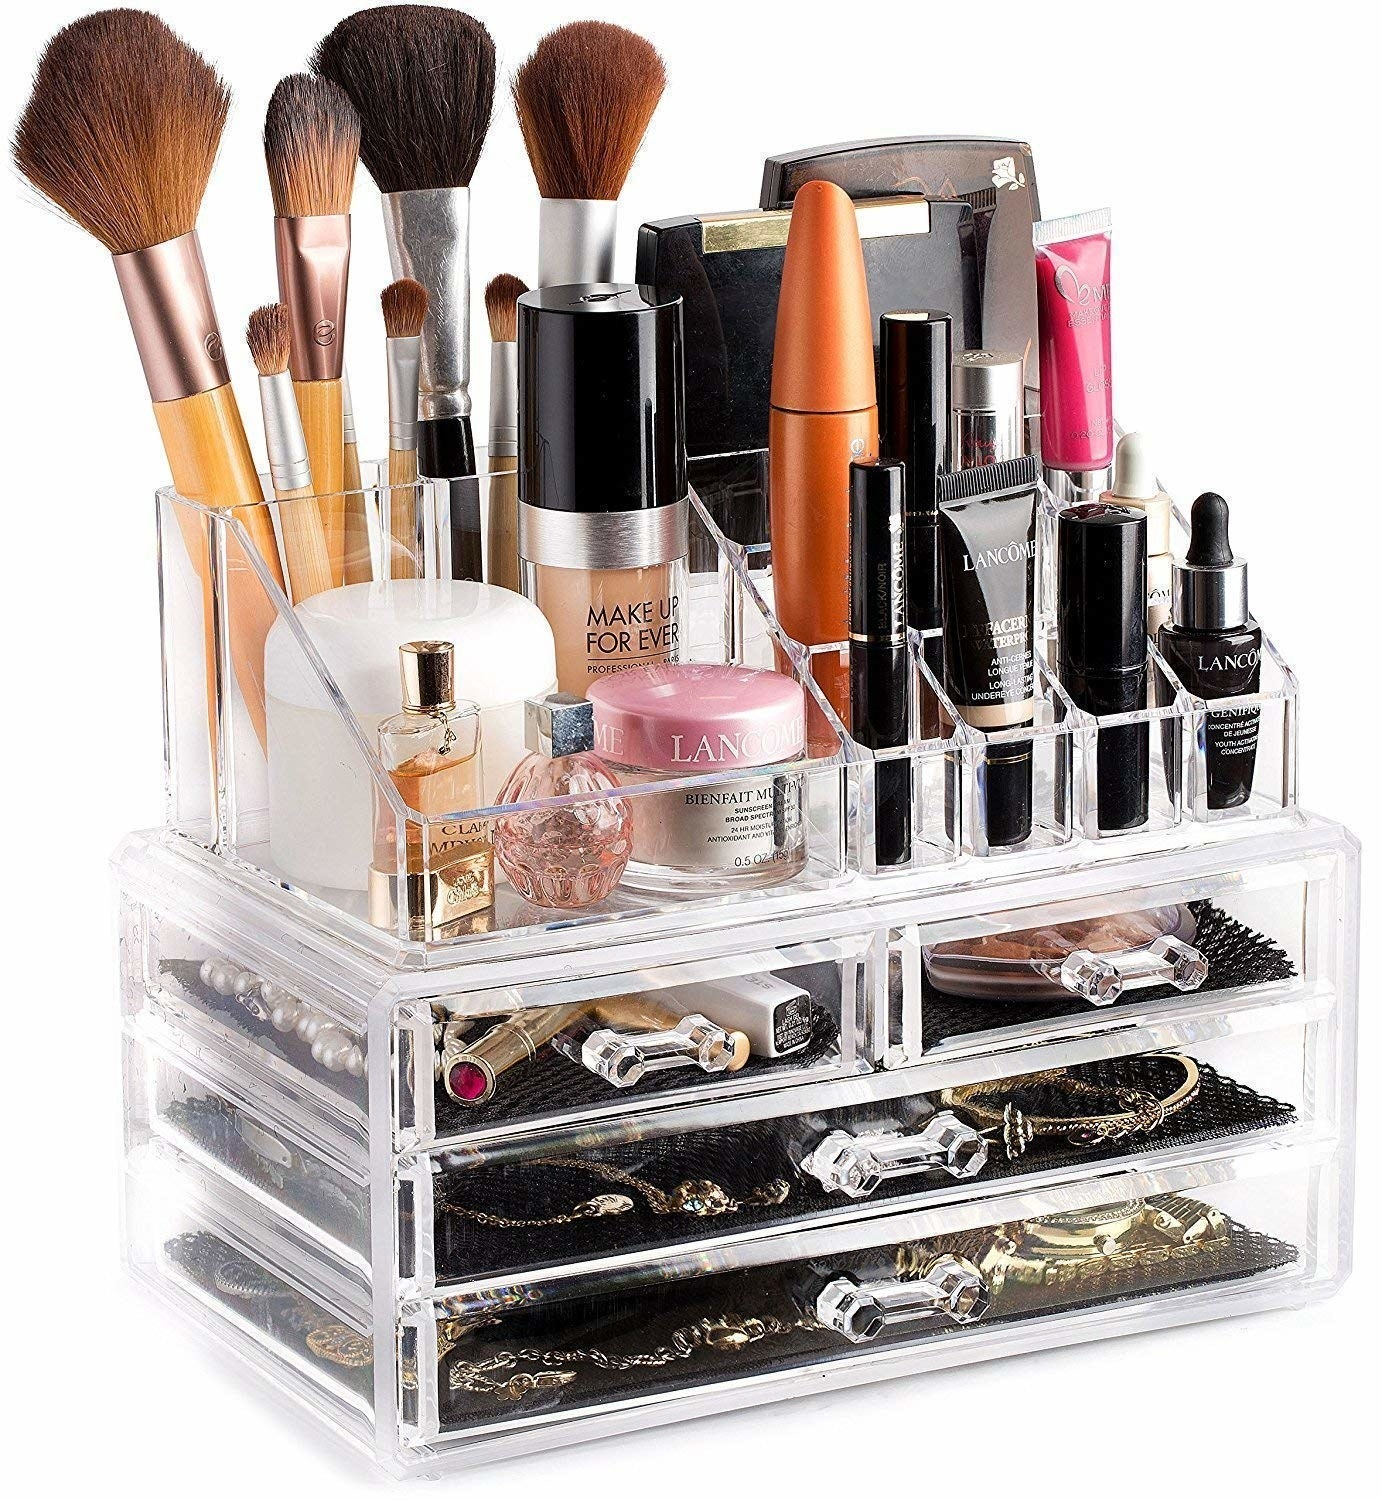 A 16-compartment, 4 drawer organiser filled with jewellery and makeup